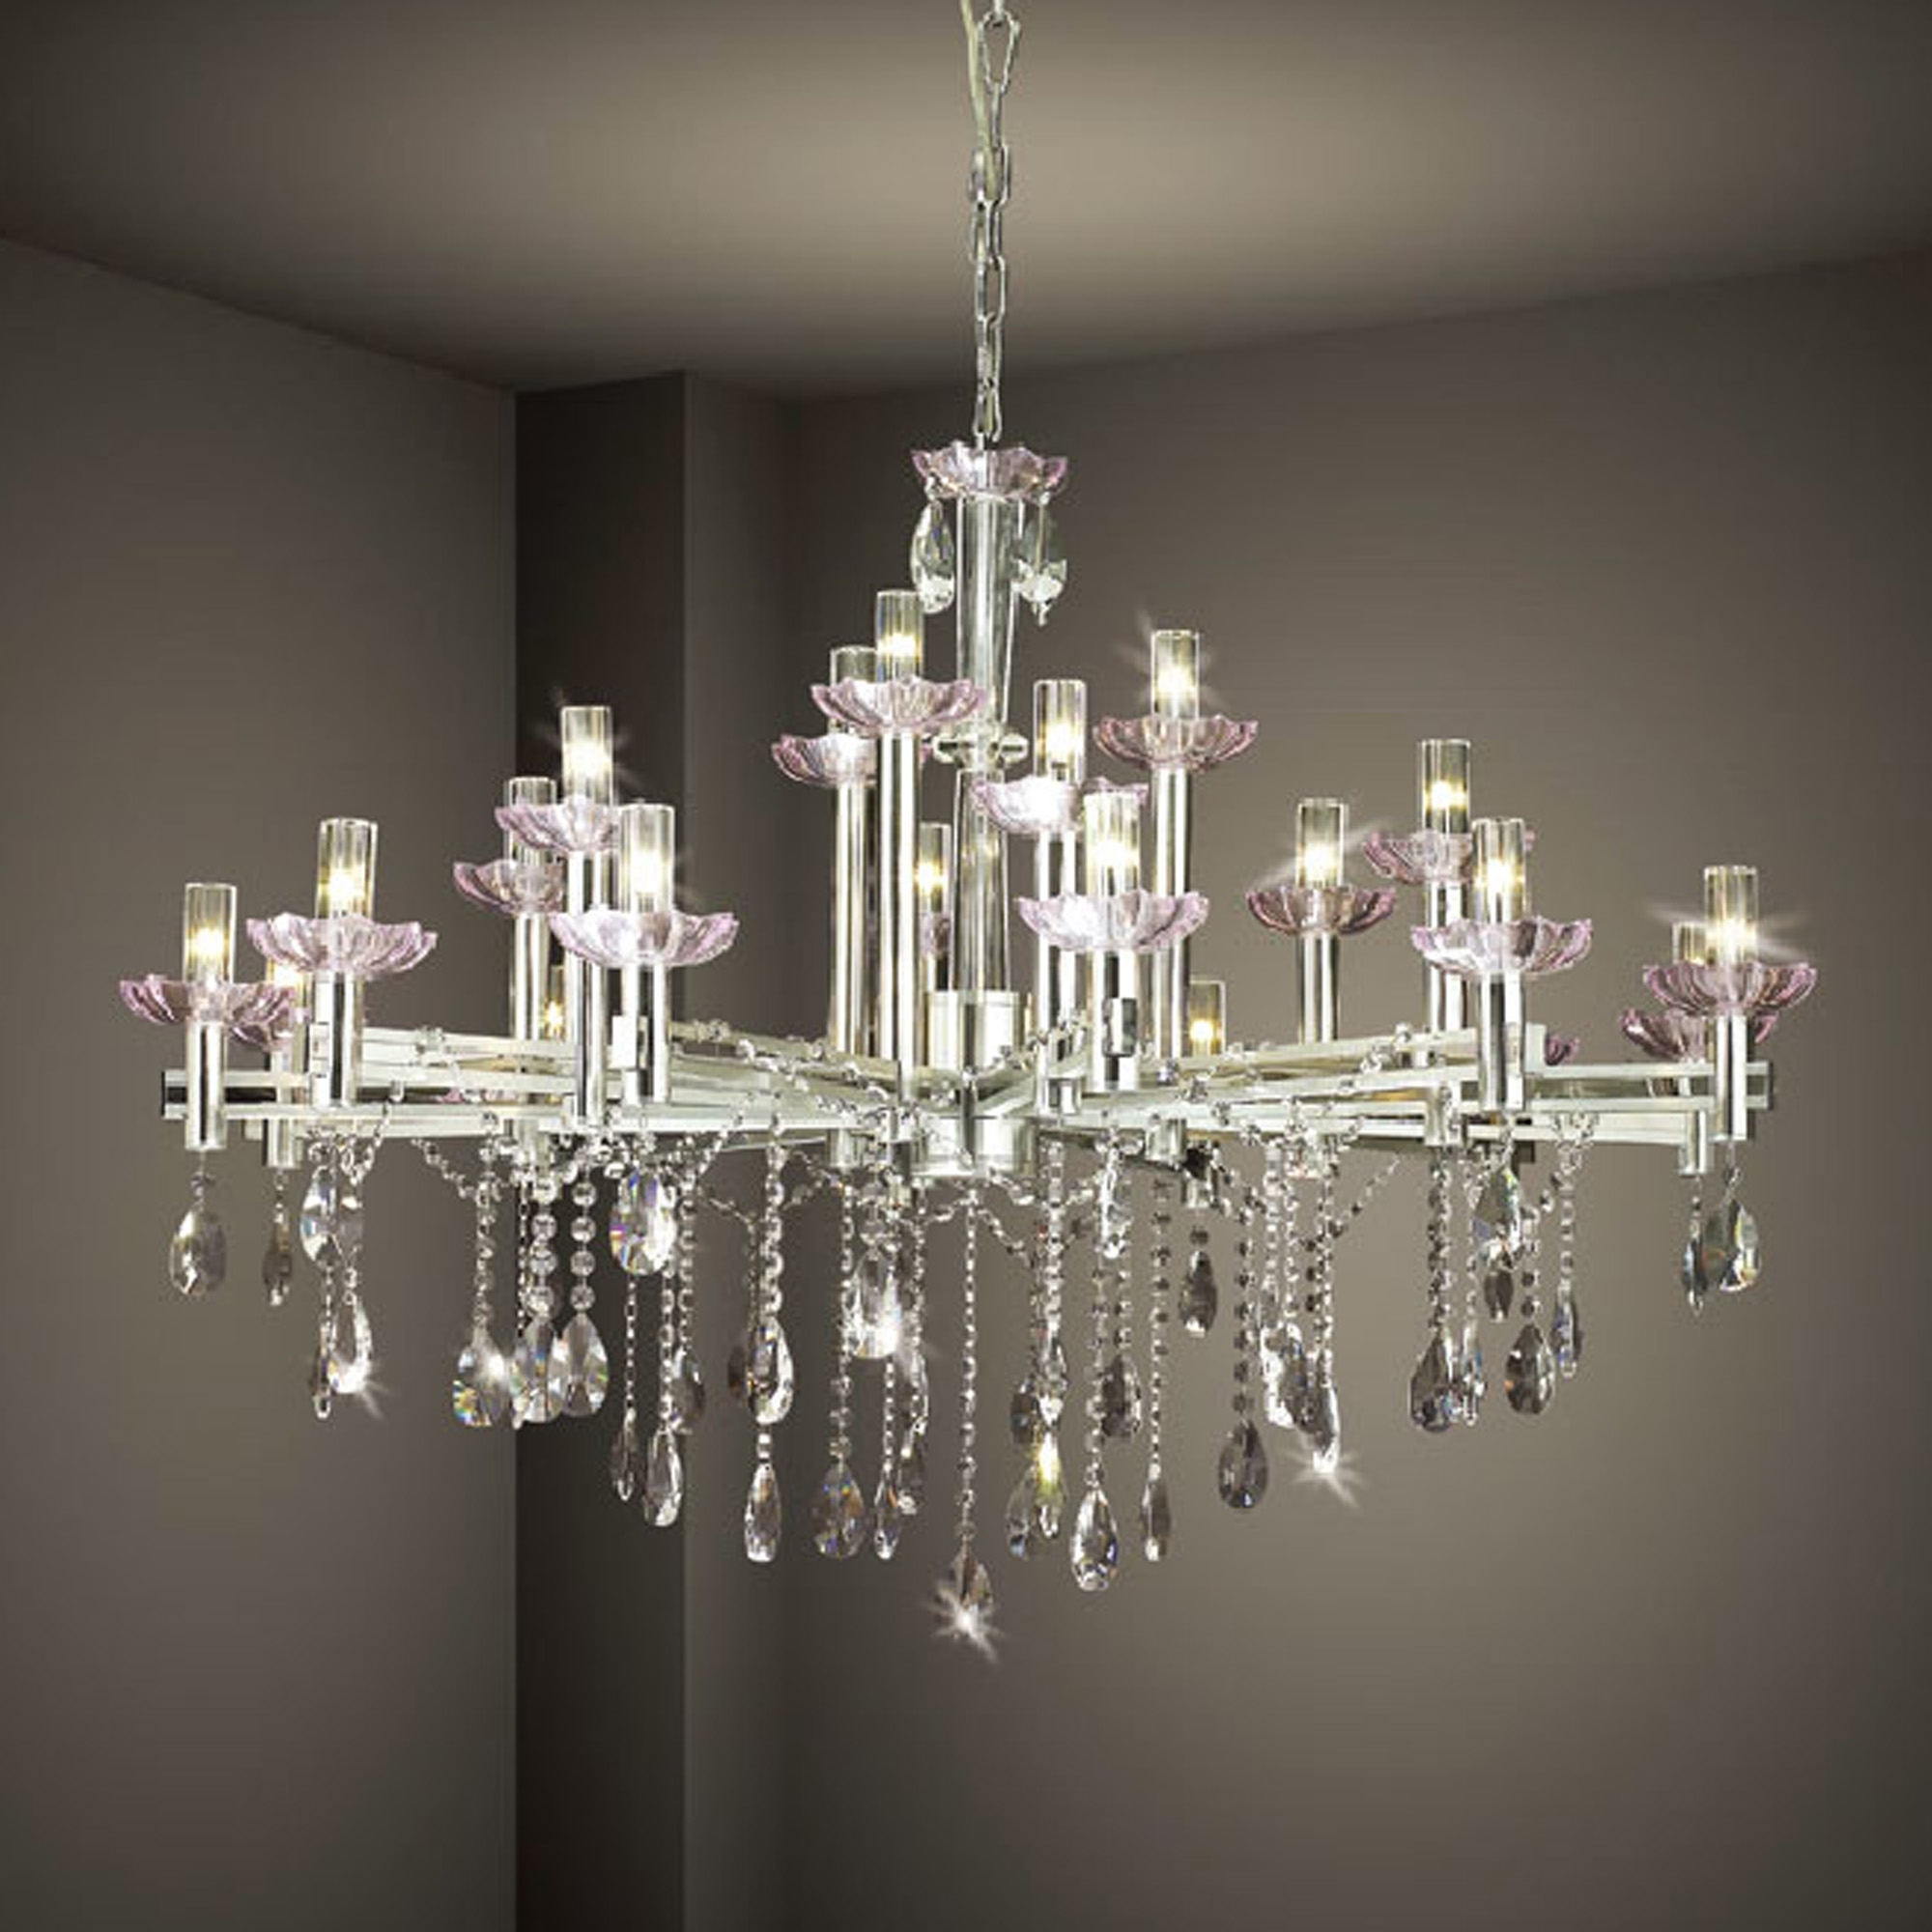 Trendy Contemporary Modern Chandelier Throughout Tips Placing Contemporary Chandeliers At Ceiling (View 12 of 20)